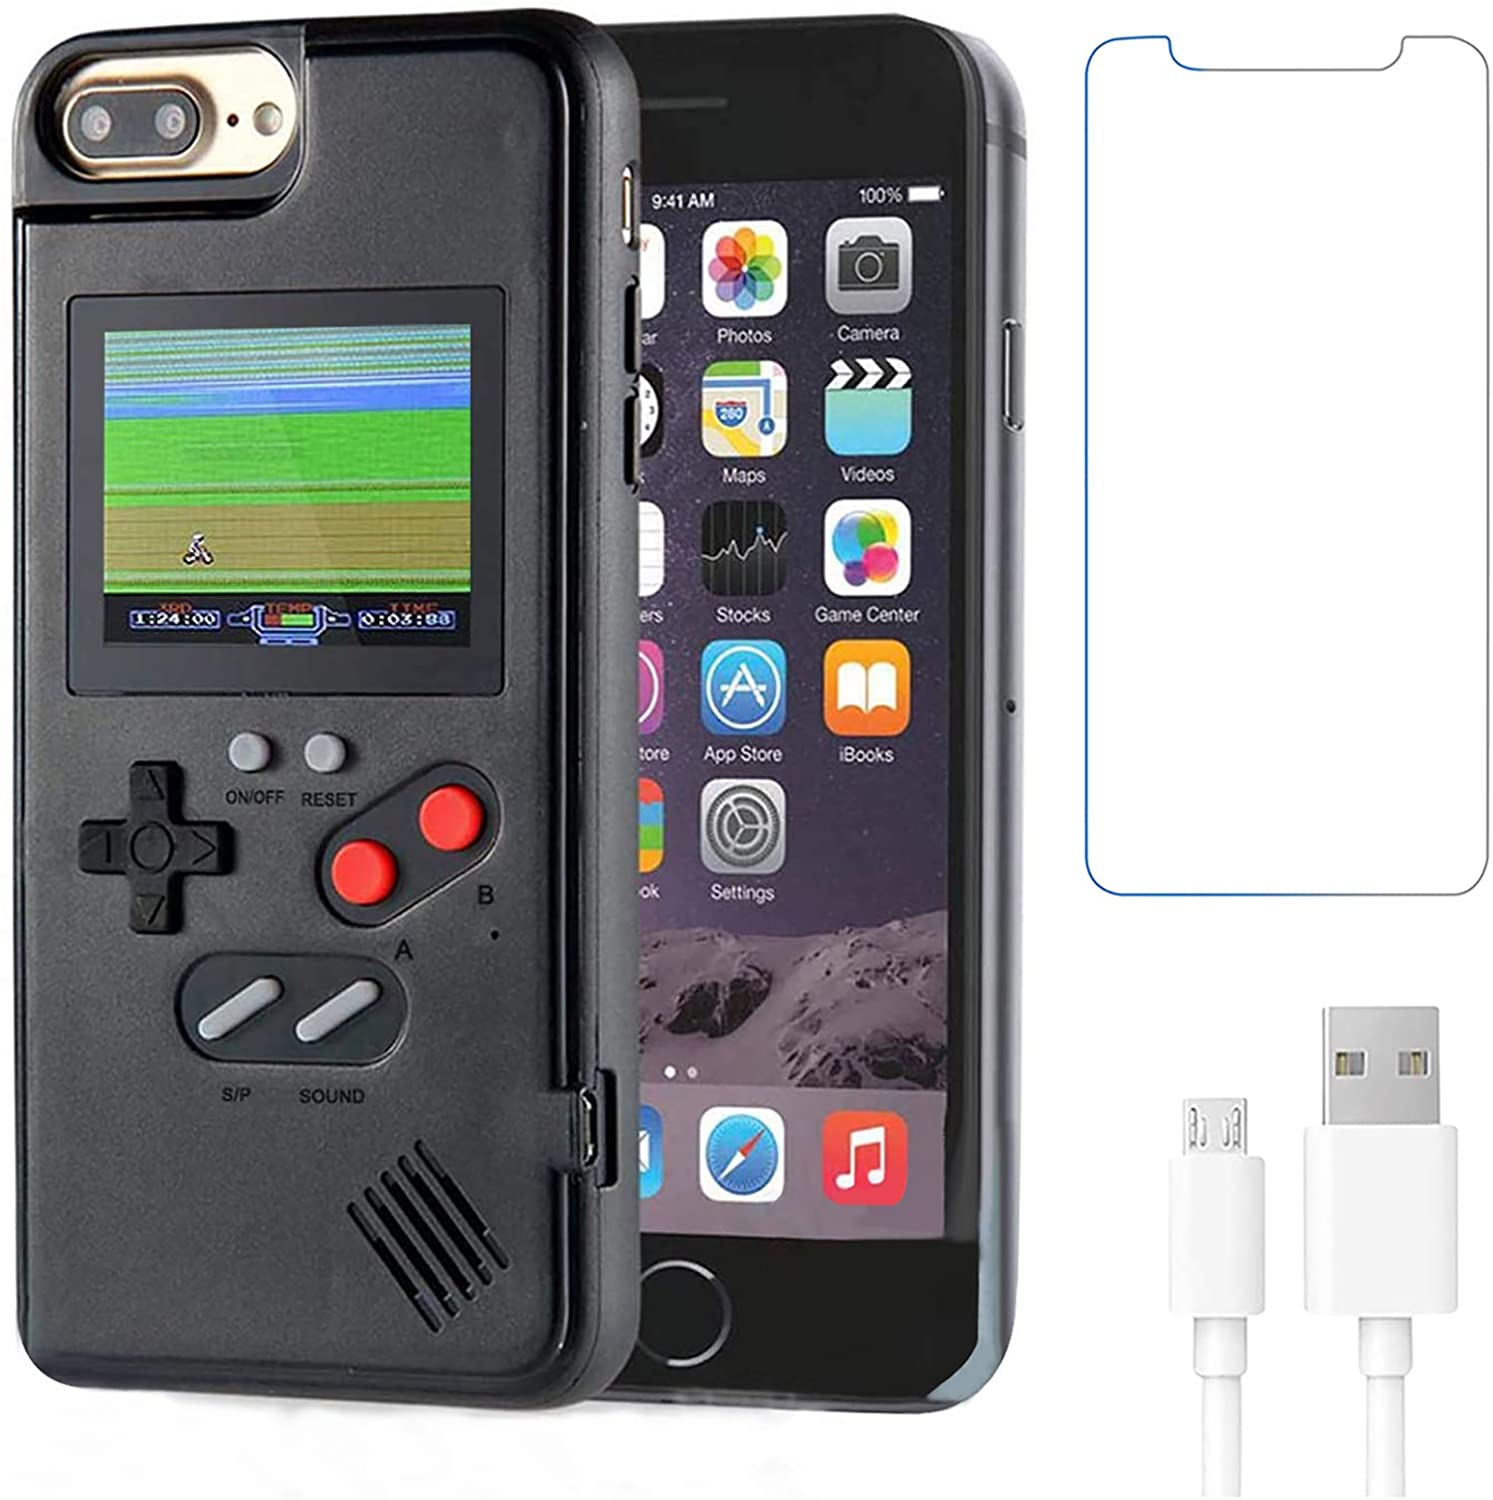 Gameboy Case for iPhone 6 Plus/ 6s Plus/ 7 Plus/ 8 Plus,Handheld Retro 36 Classic Games,Color Video Display Game Case for iPhone,Anti-Scratch Shockproof Phone Cover for iPhone WeLohas